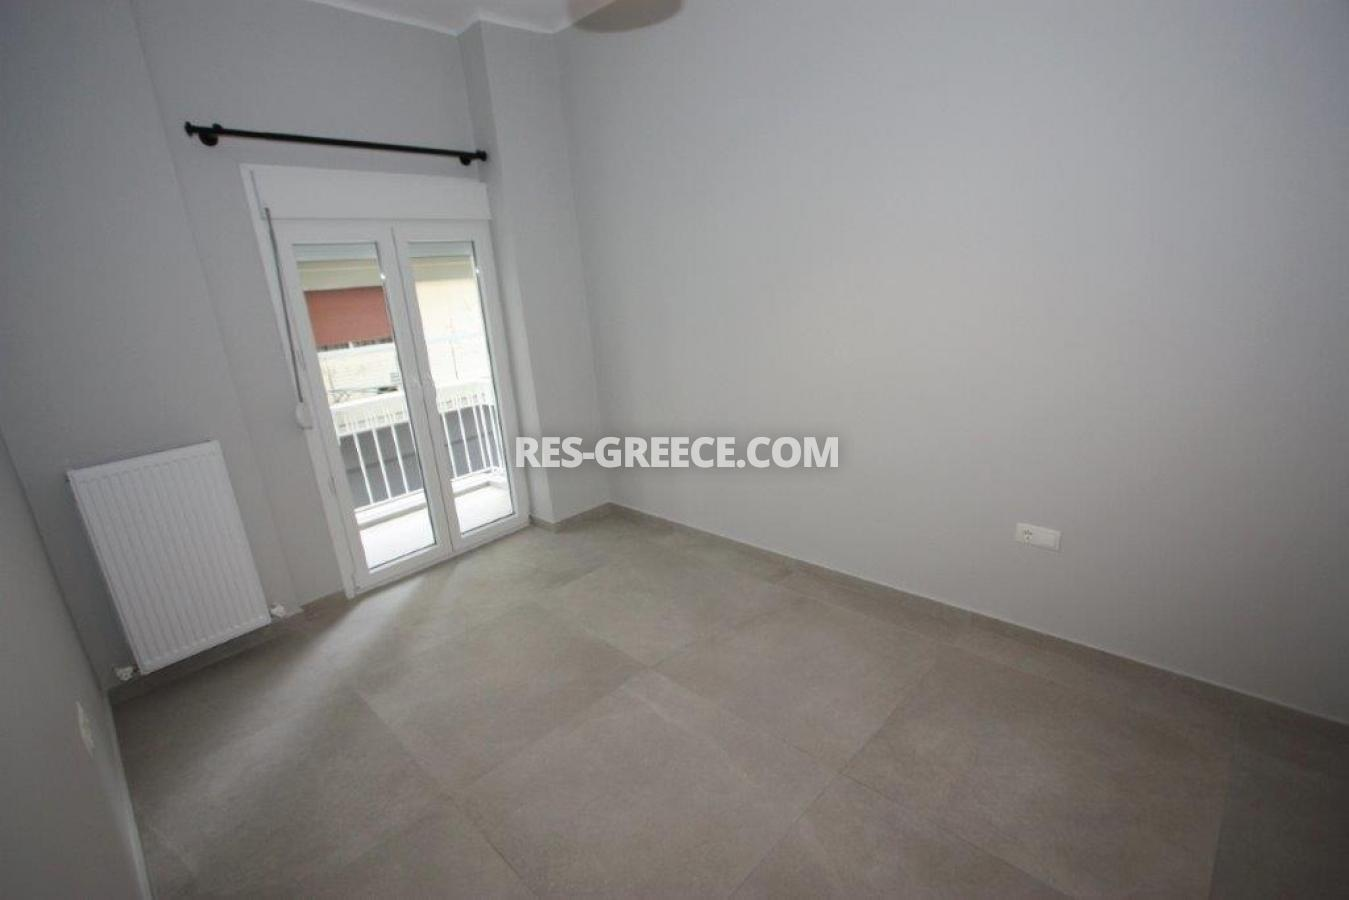 Poli 11, Central Macedonia, Greece - investment appartment in Thessaloniki - Photo 6